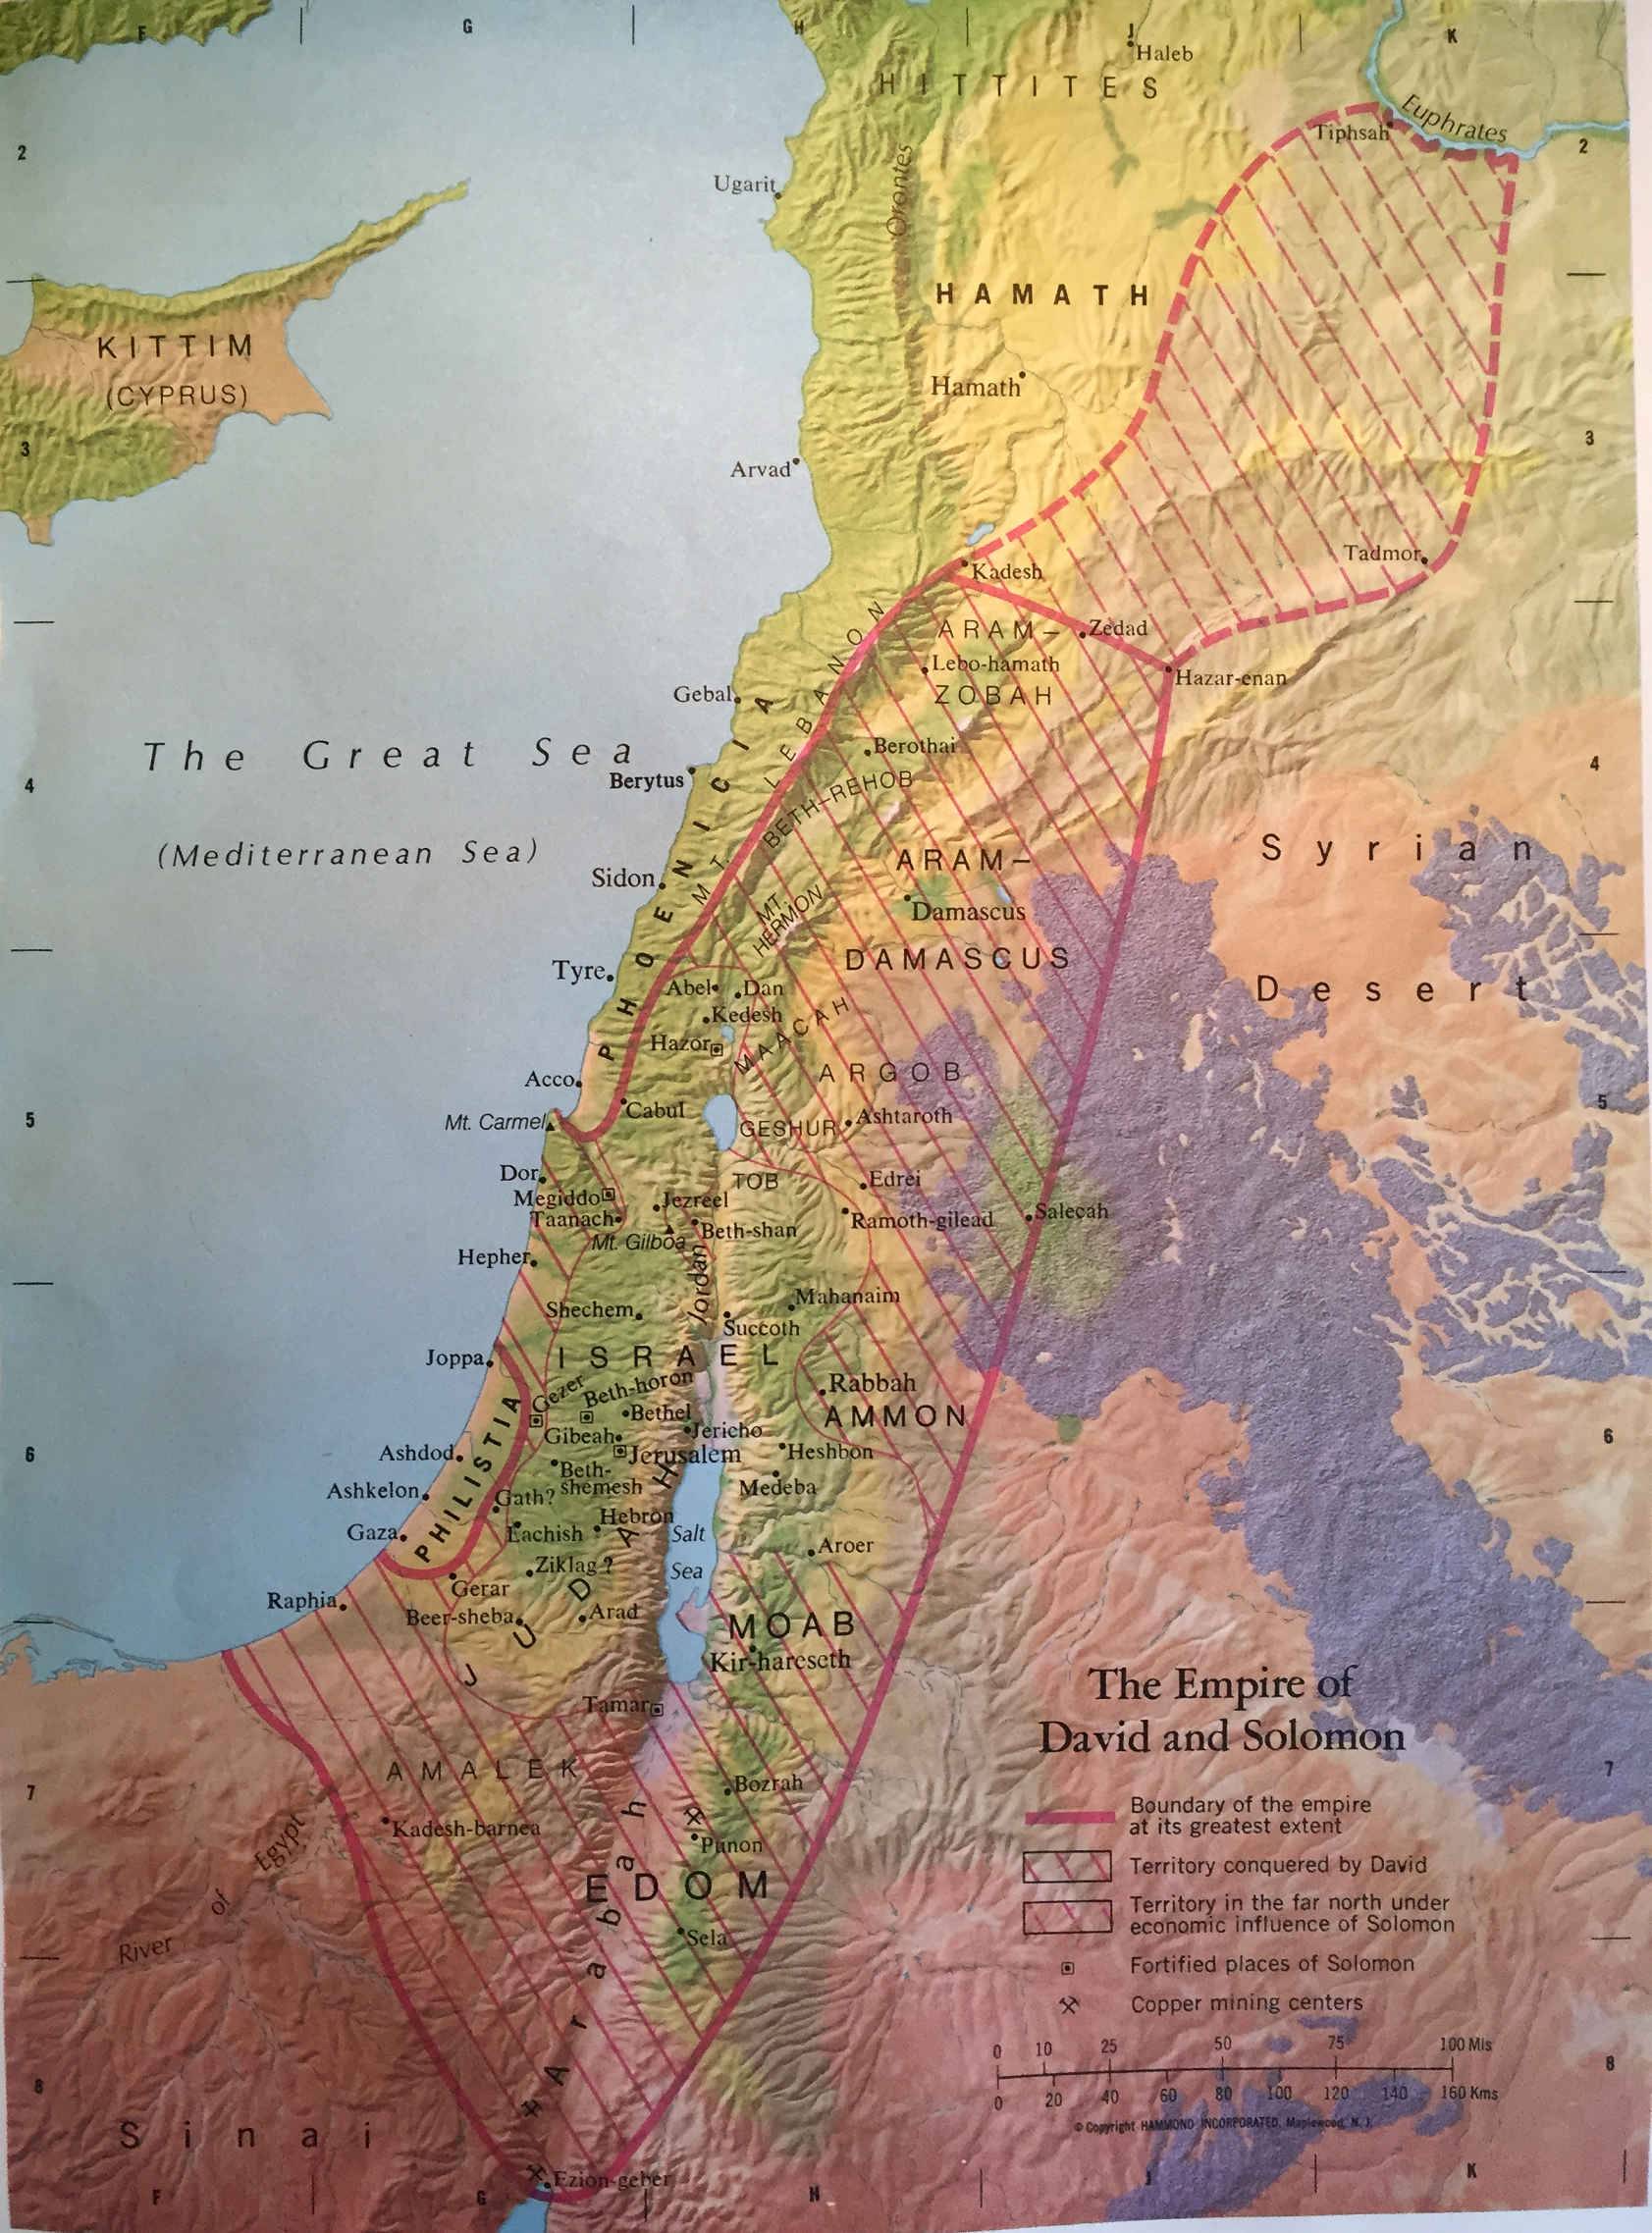 Bible Map: The Empire of David and Solomon